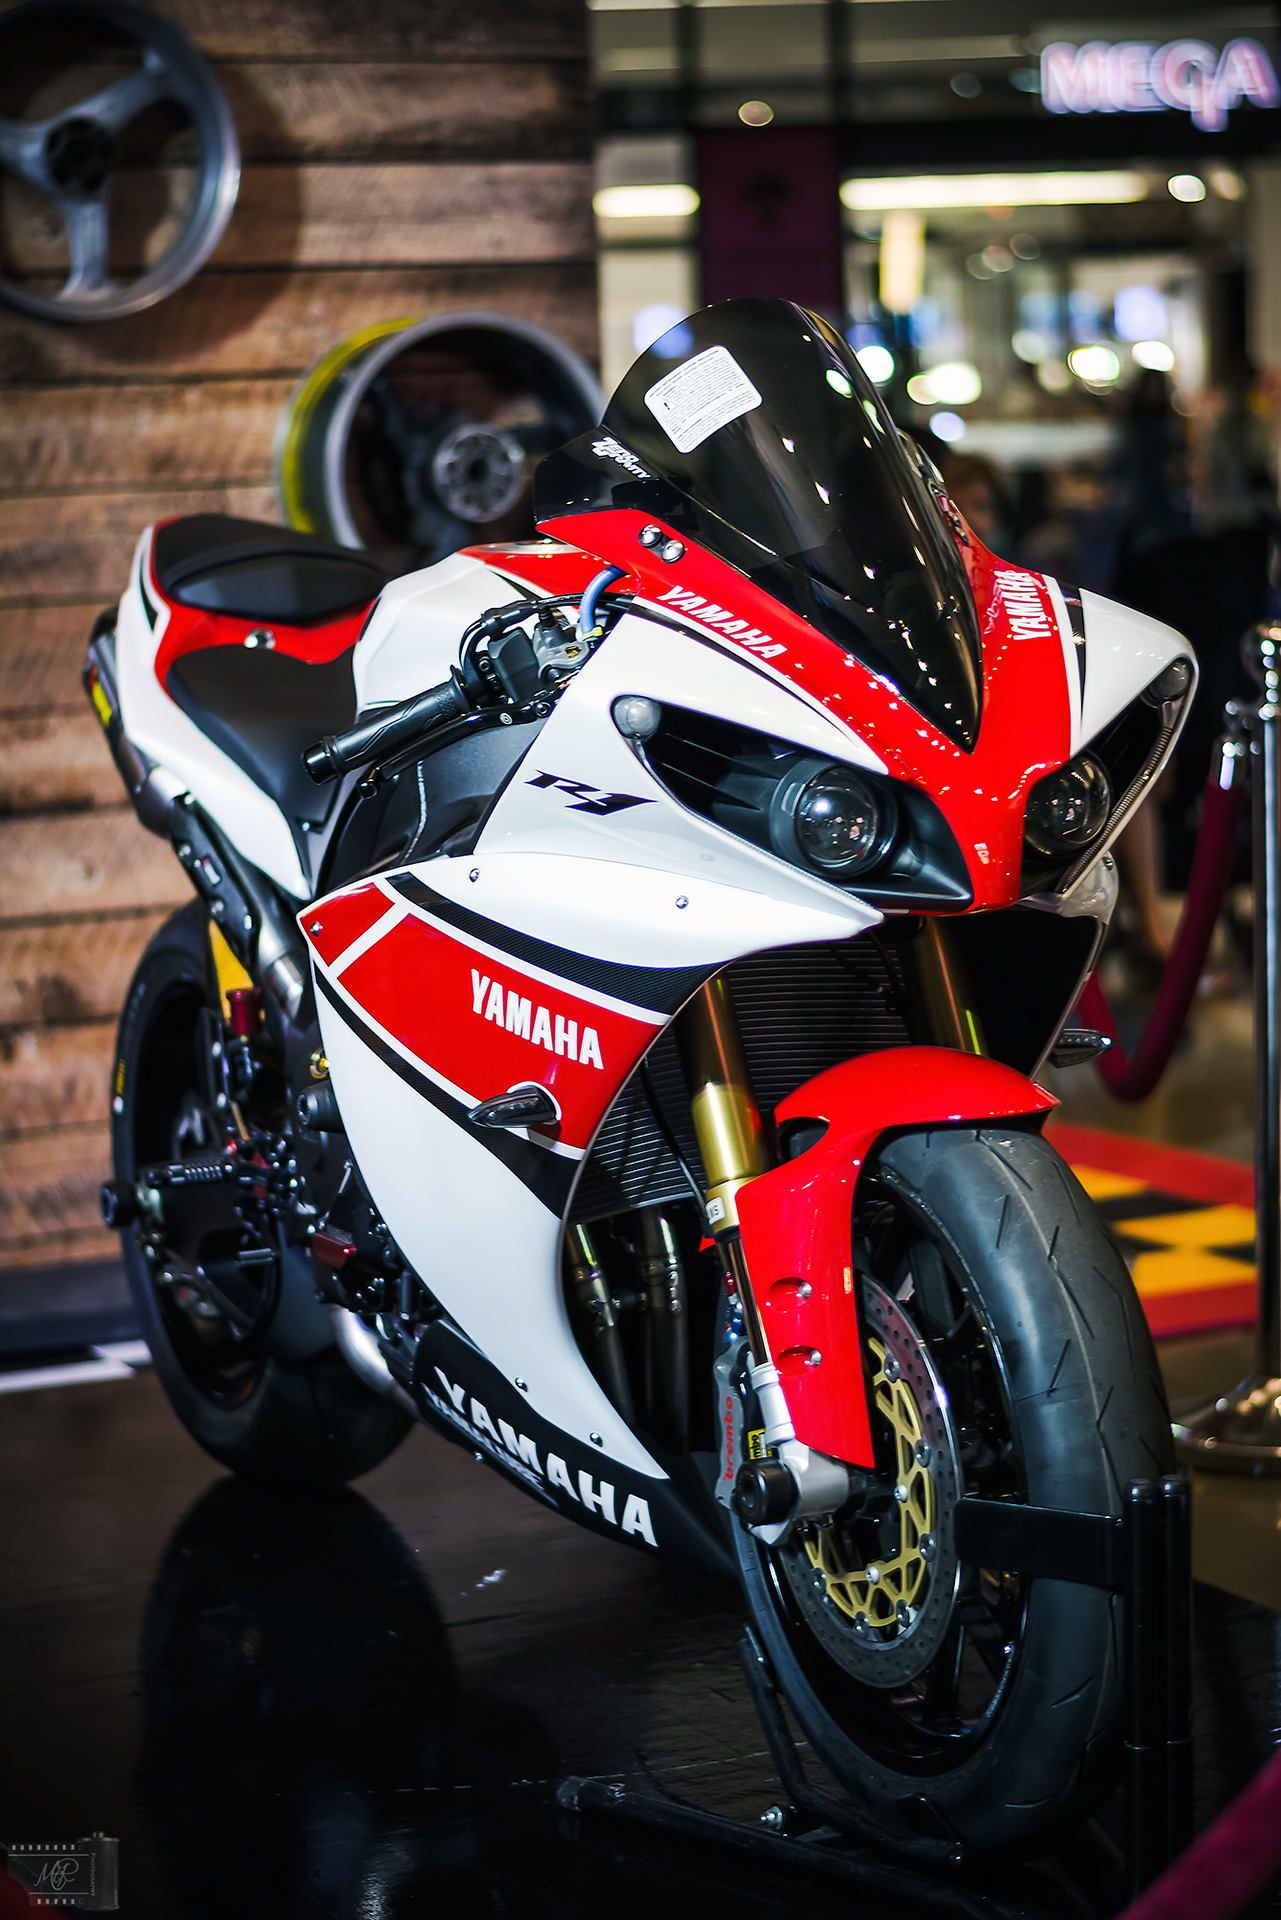 yamaha r1 by mtr photography photo 62796821 500px bikes pinterest yamaha r1. Black Bedroom Furniture Sets. Home Design Ideas